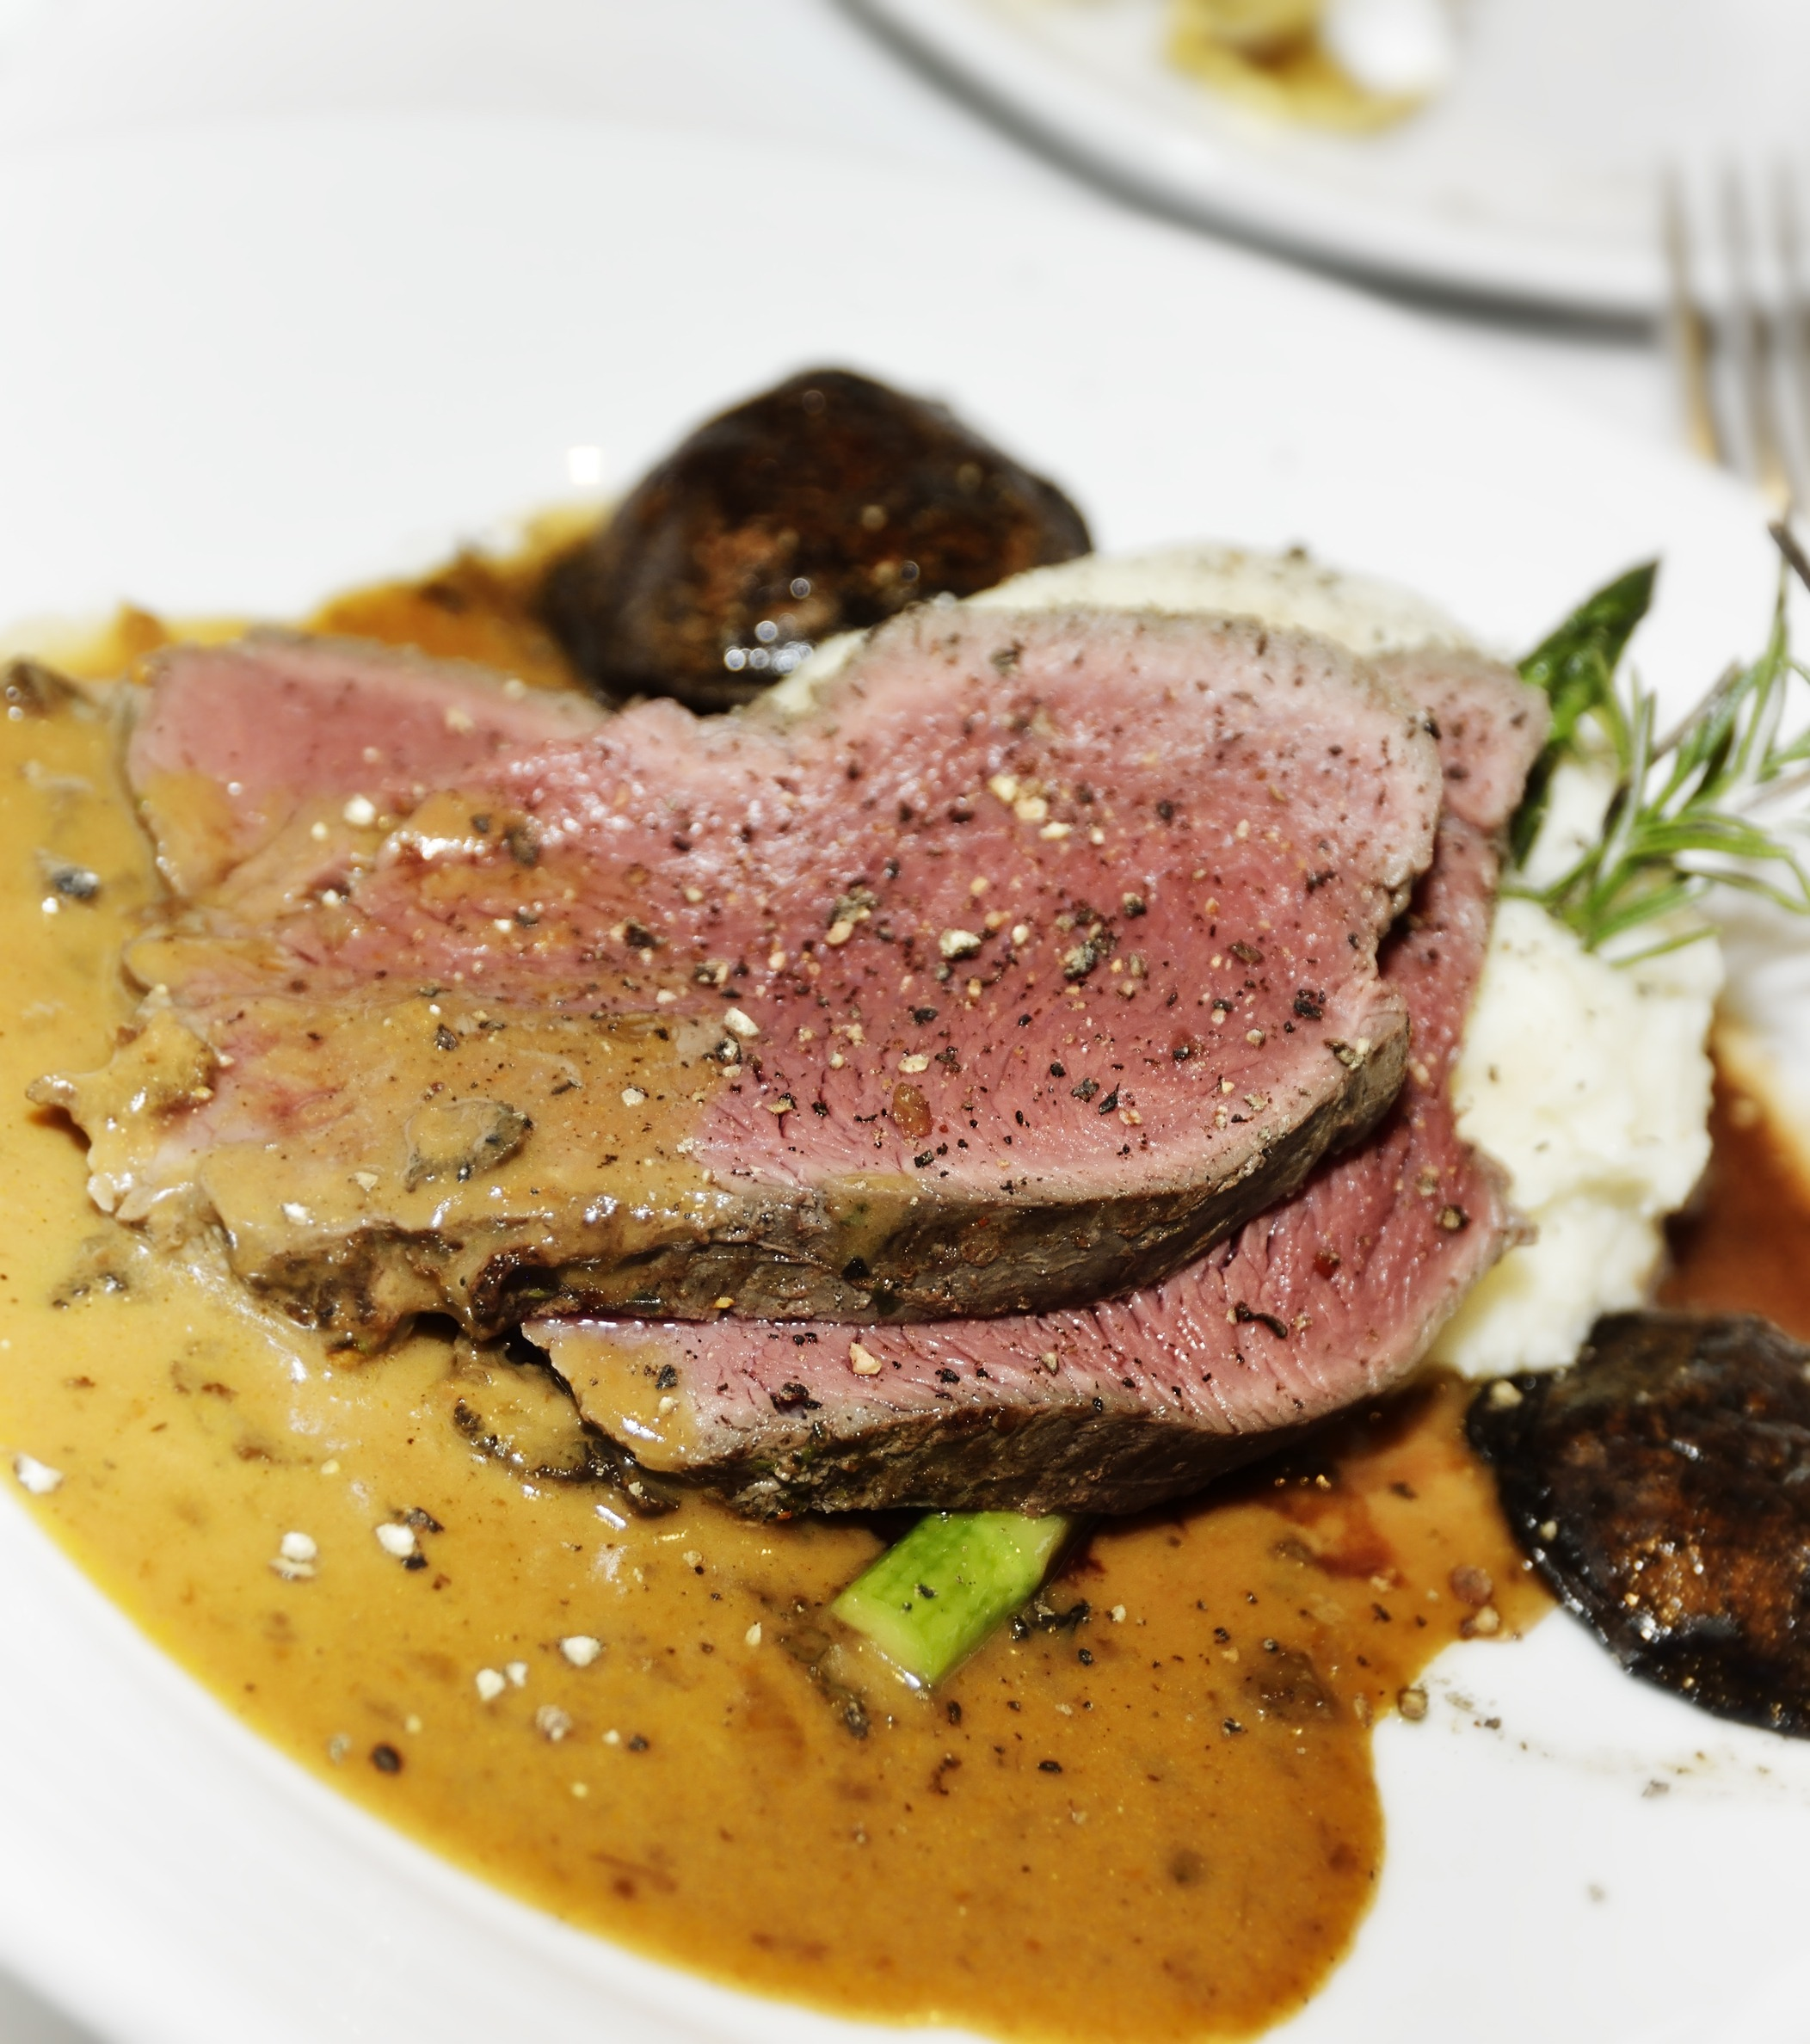 Marinated Bison Sirloin Tip Roast with Herbs and Wine article image